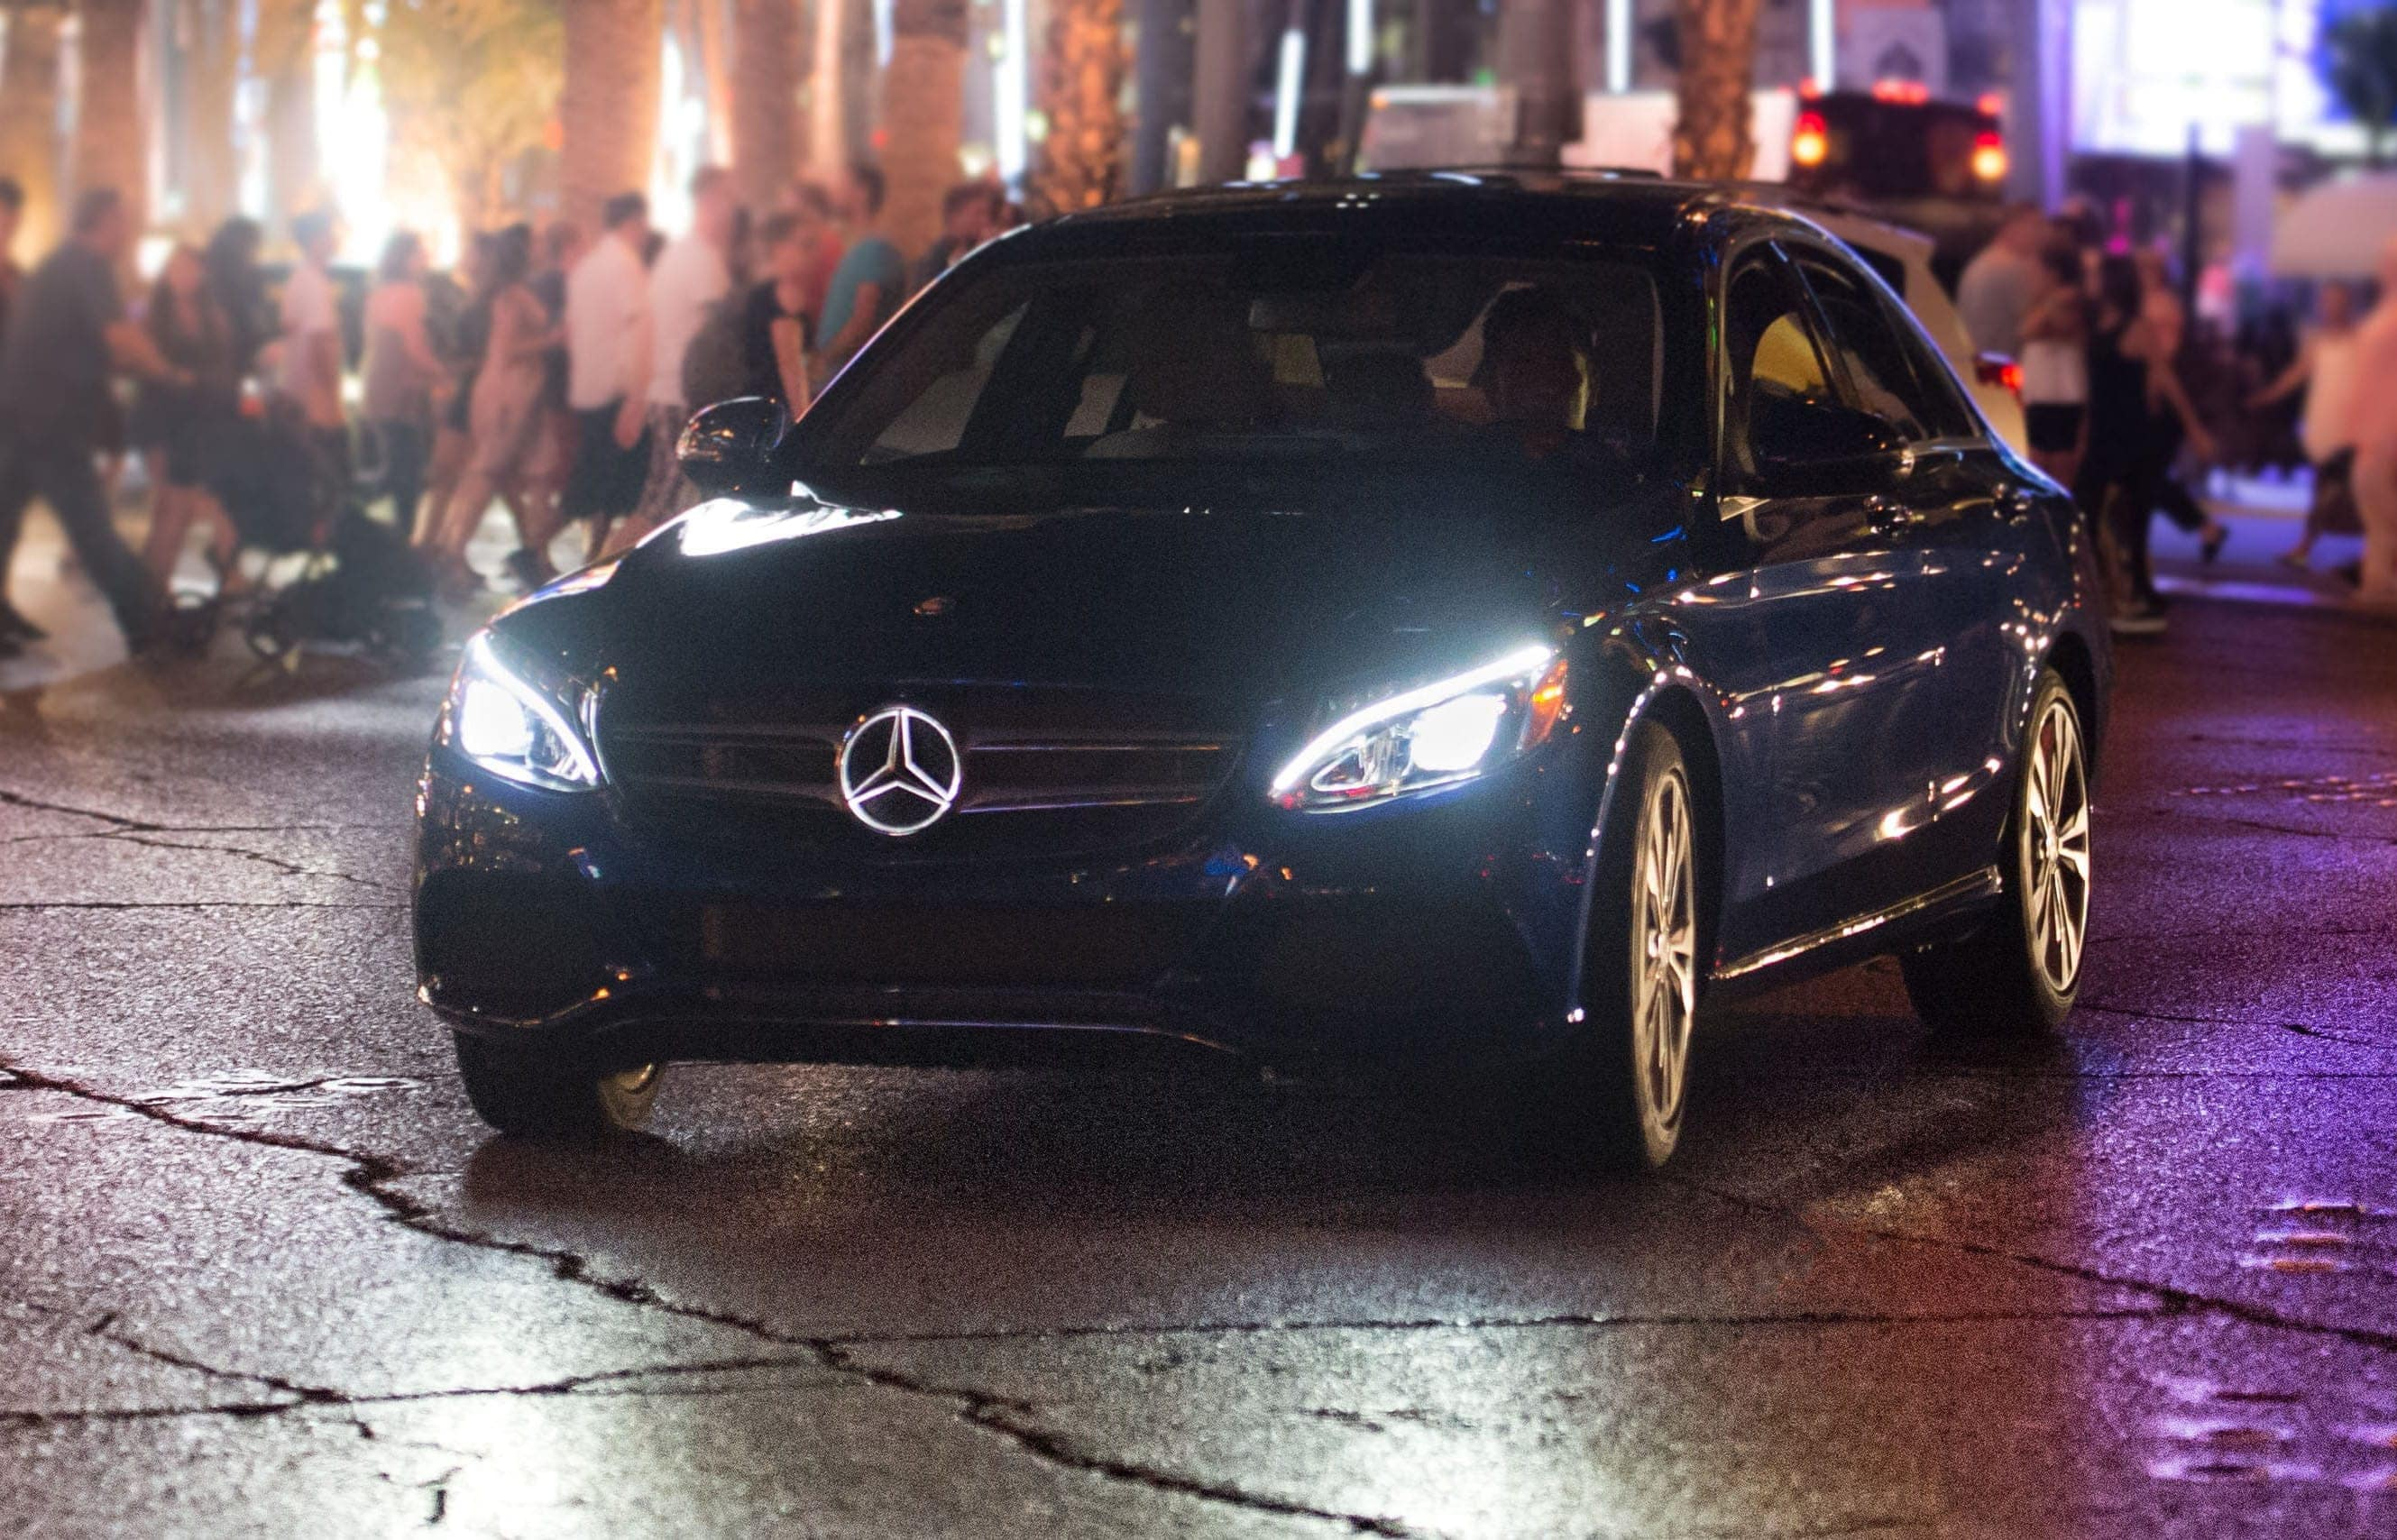 Mercedes-Benz at night